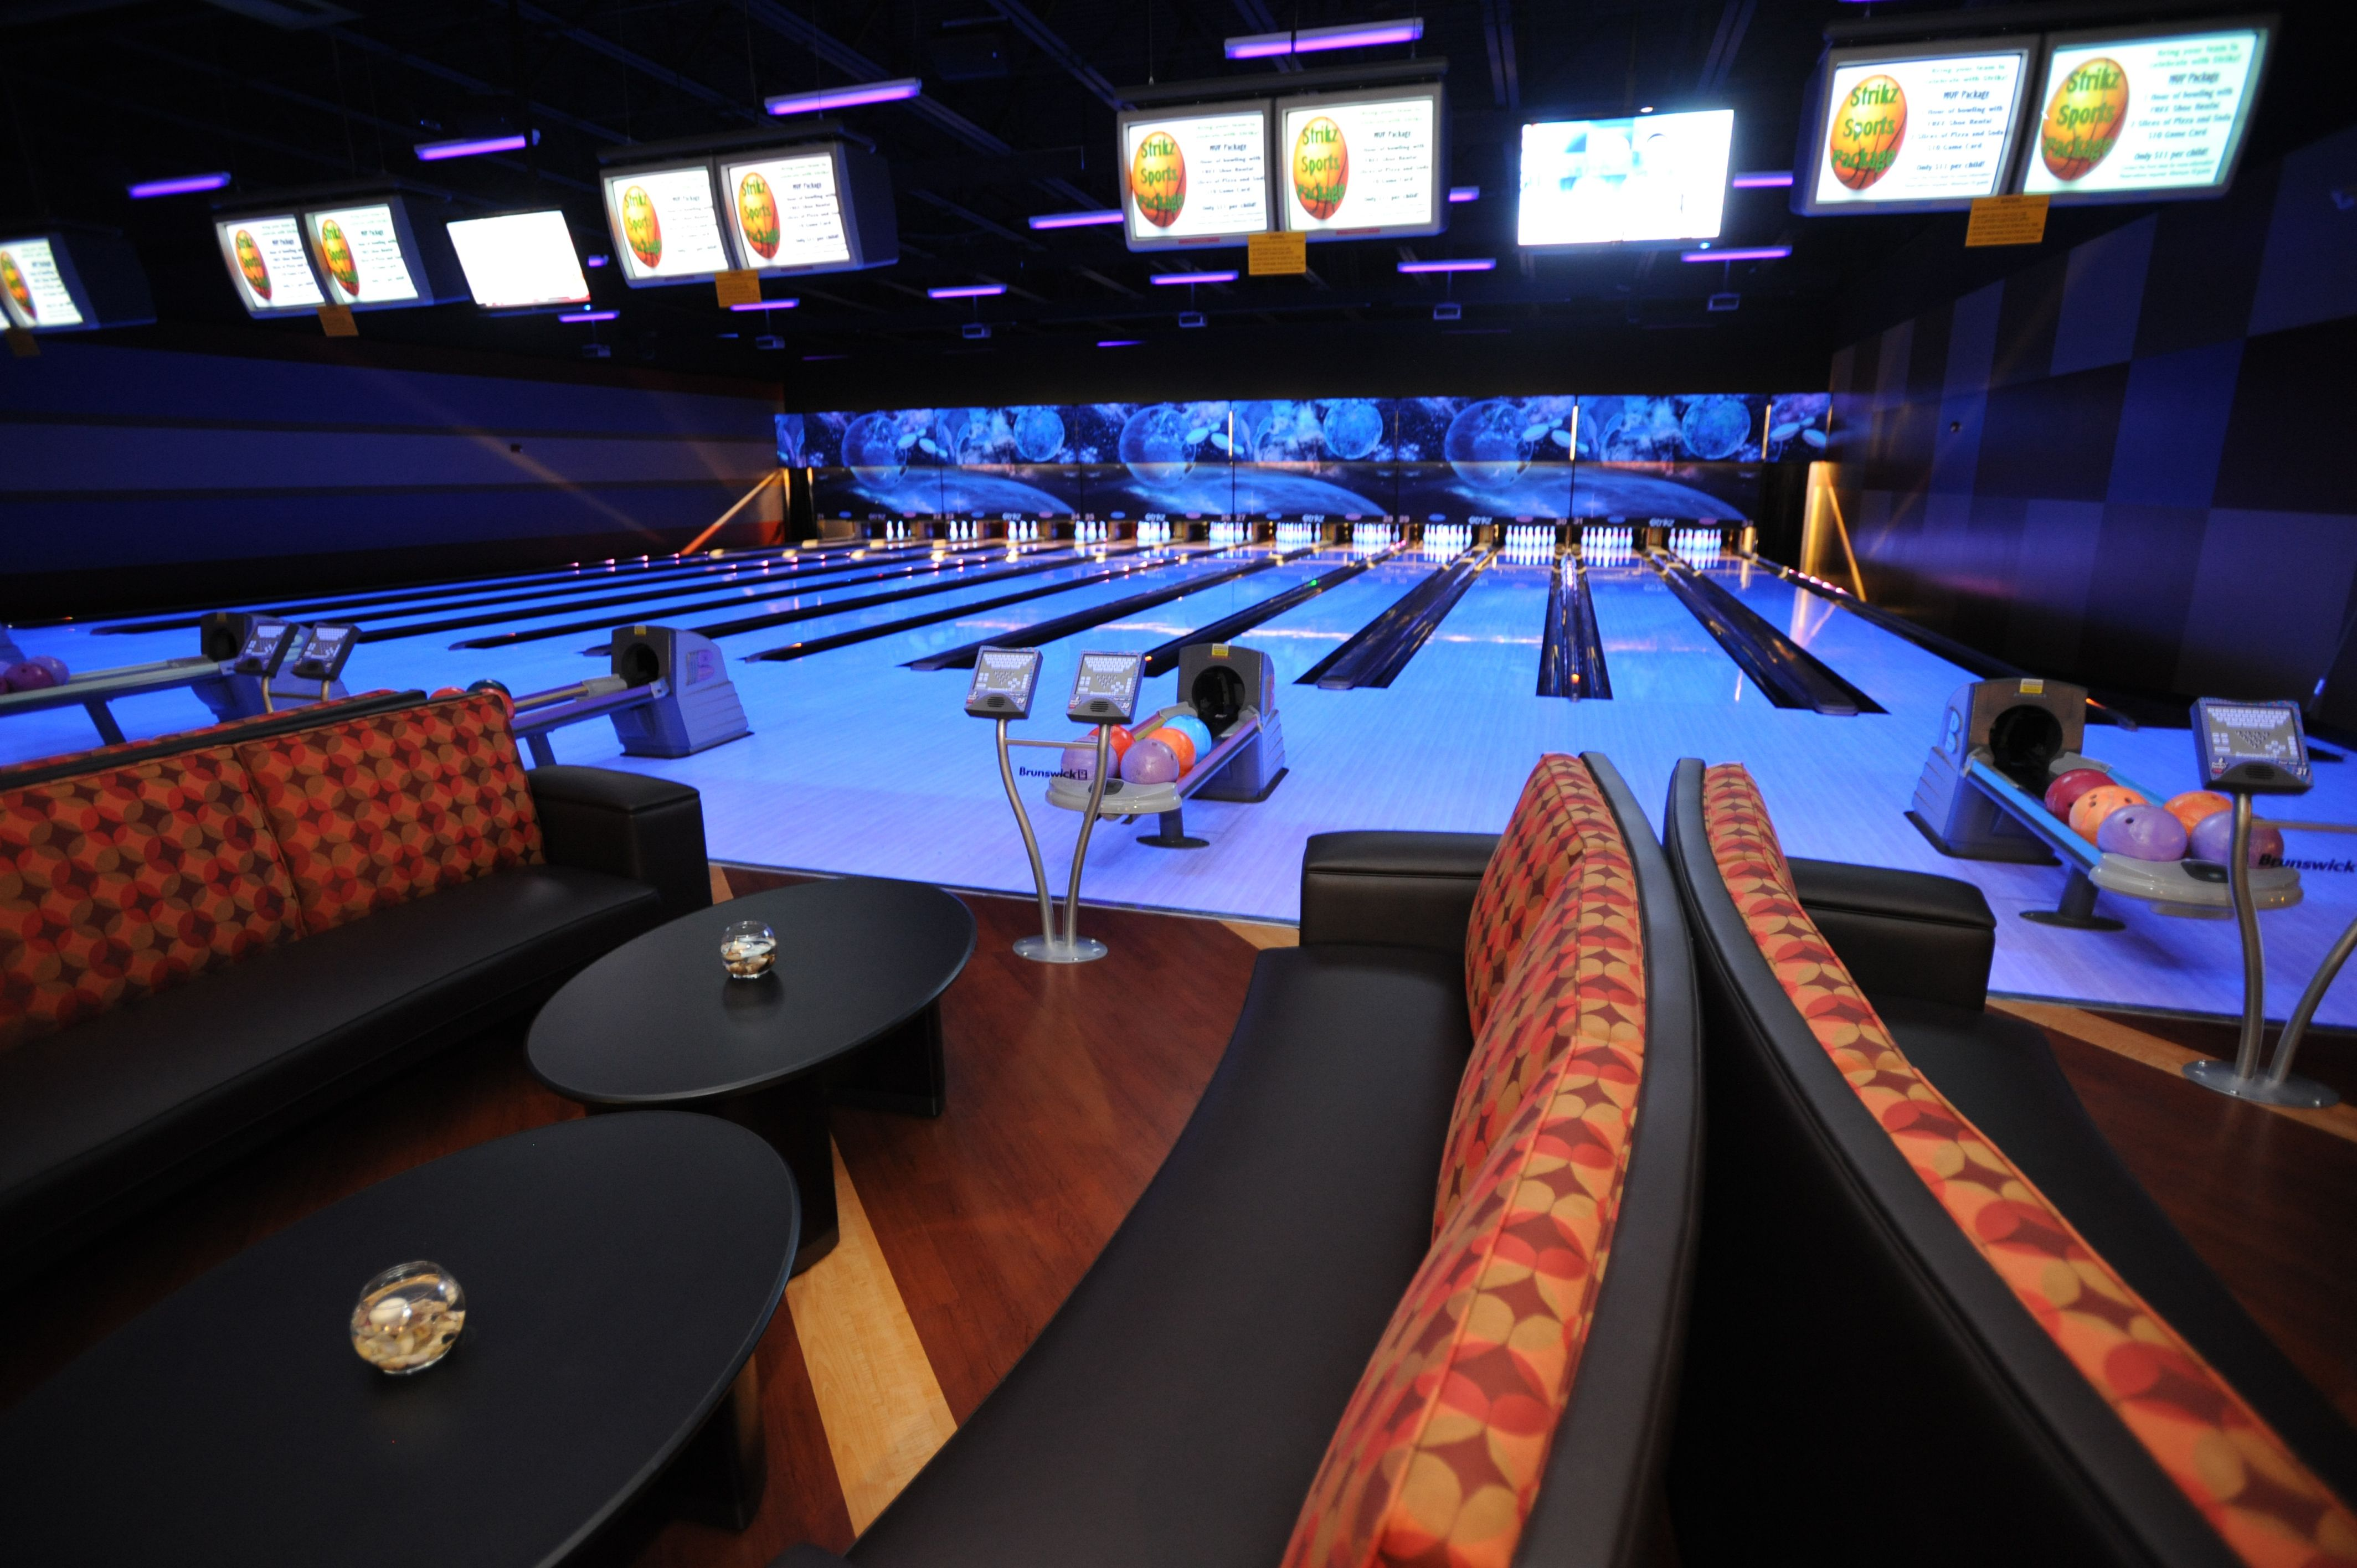 Strikz Is A 43 000 Square Foot Entertainment Center Which Includes Fun Activities For All Ages And Includes 32 Bowling Lanes Frisco Entertainment Frisco Texas